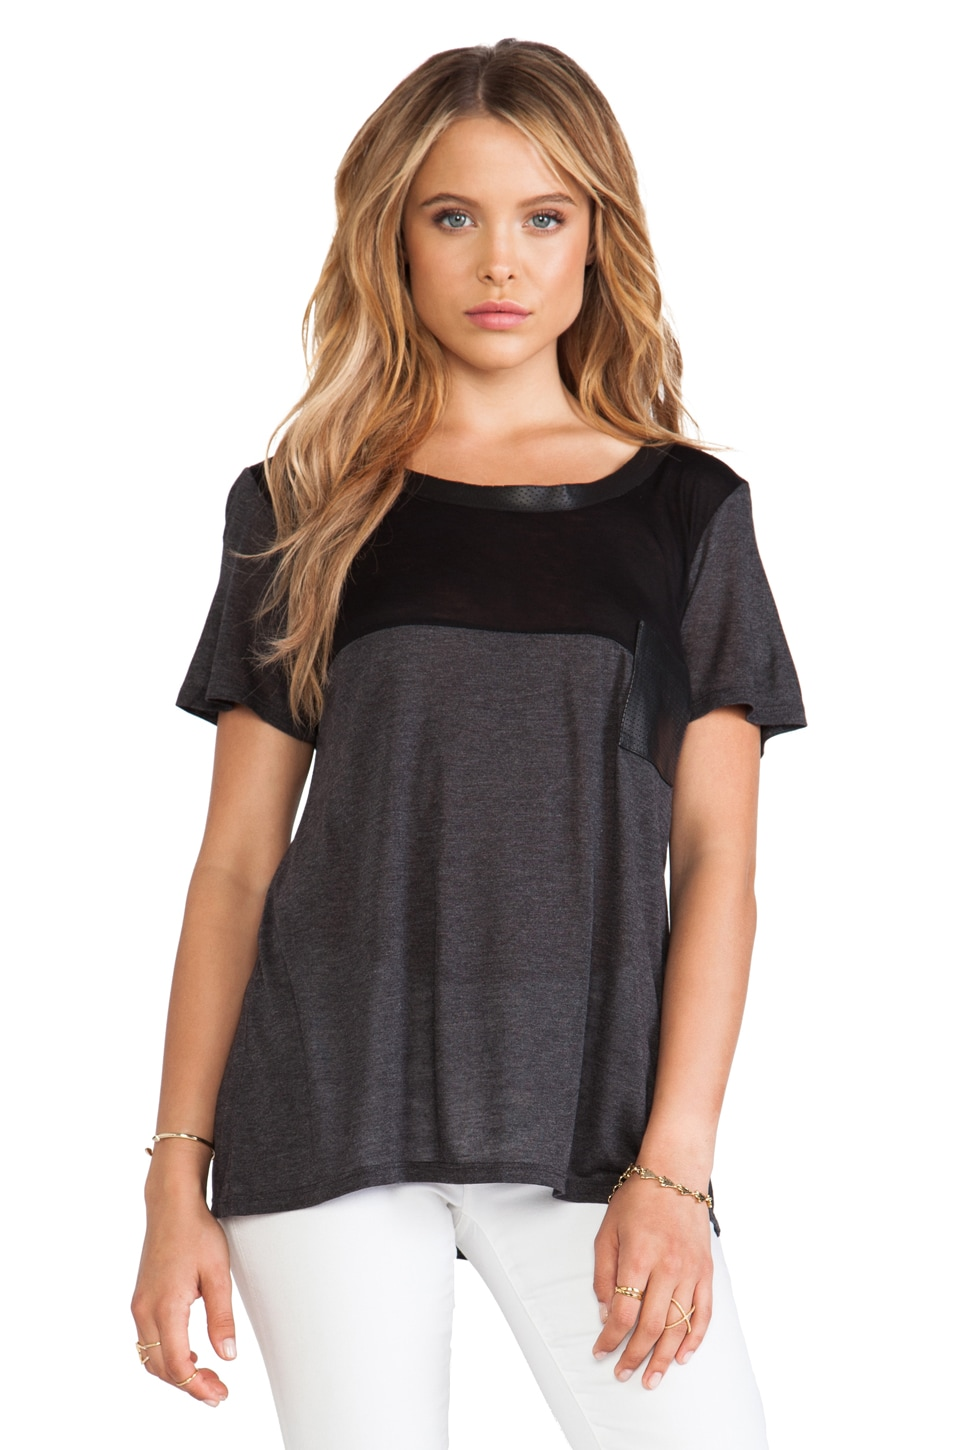 Heather Short Sleeve Leather Trim Tee in Heather Black & Black